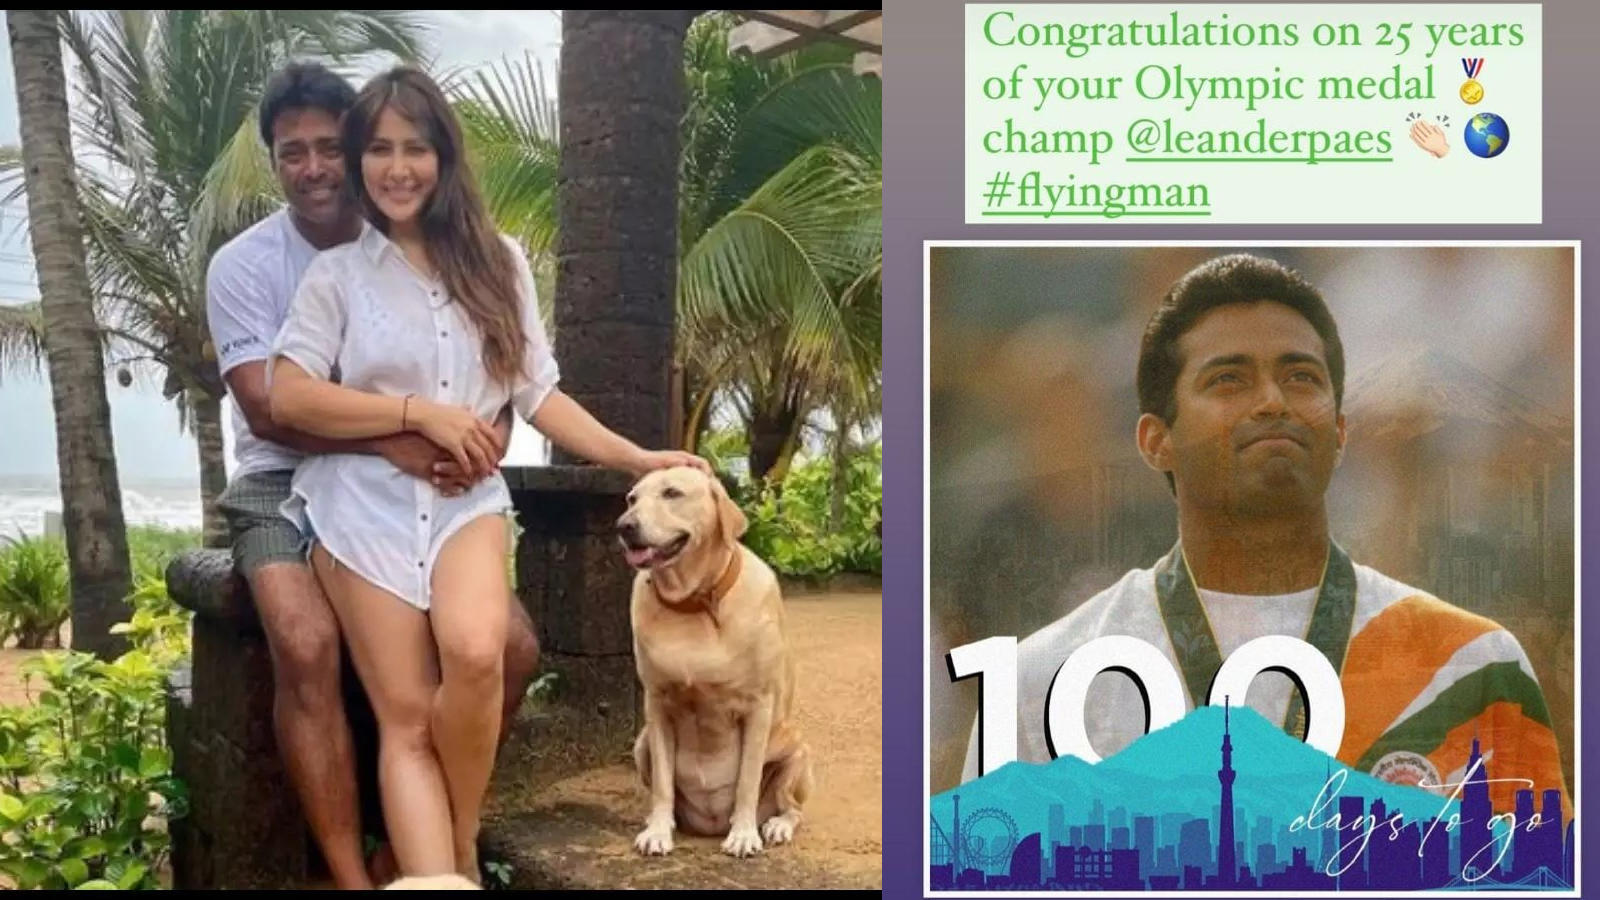 kim-sharma-celebrates-25-years-of-rumoured-boyfriend-leander-paes-bronze-medal-win-at-olympics-mentions-him-as-flying-man